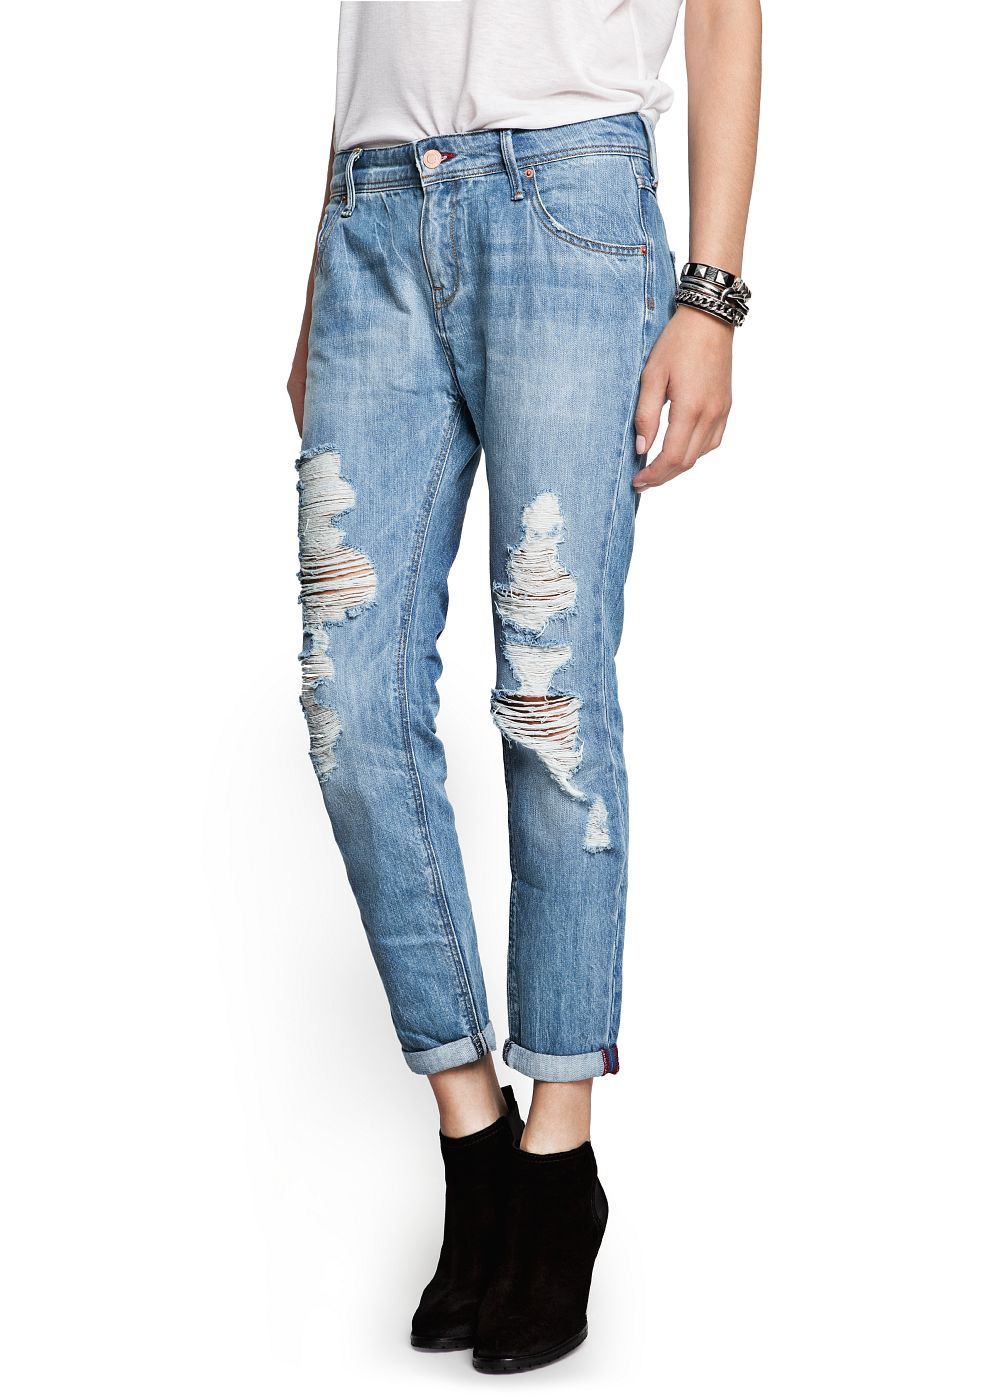 wash ripped boyfriend jeans - Women -